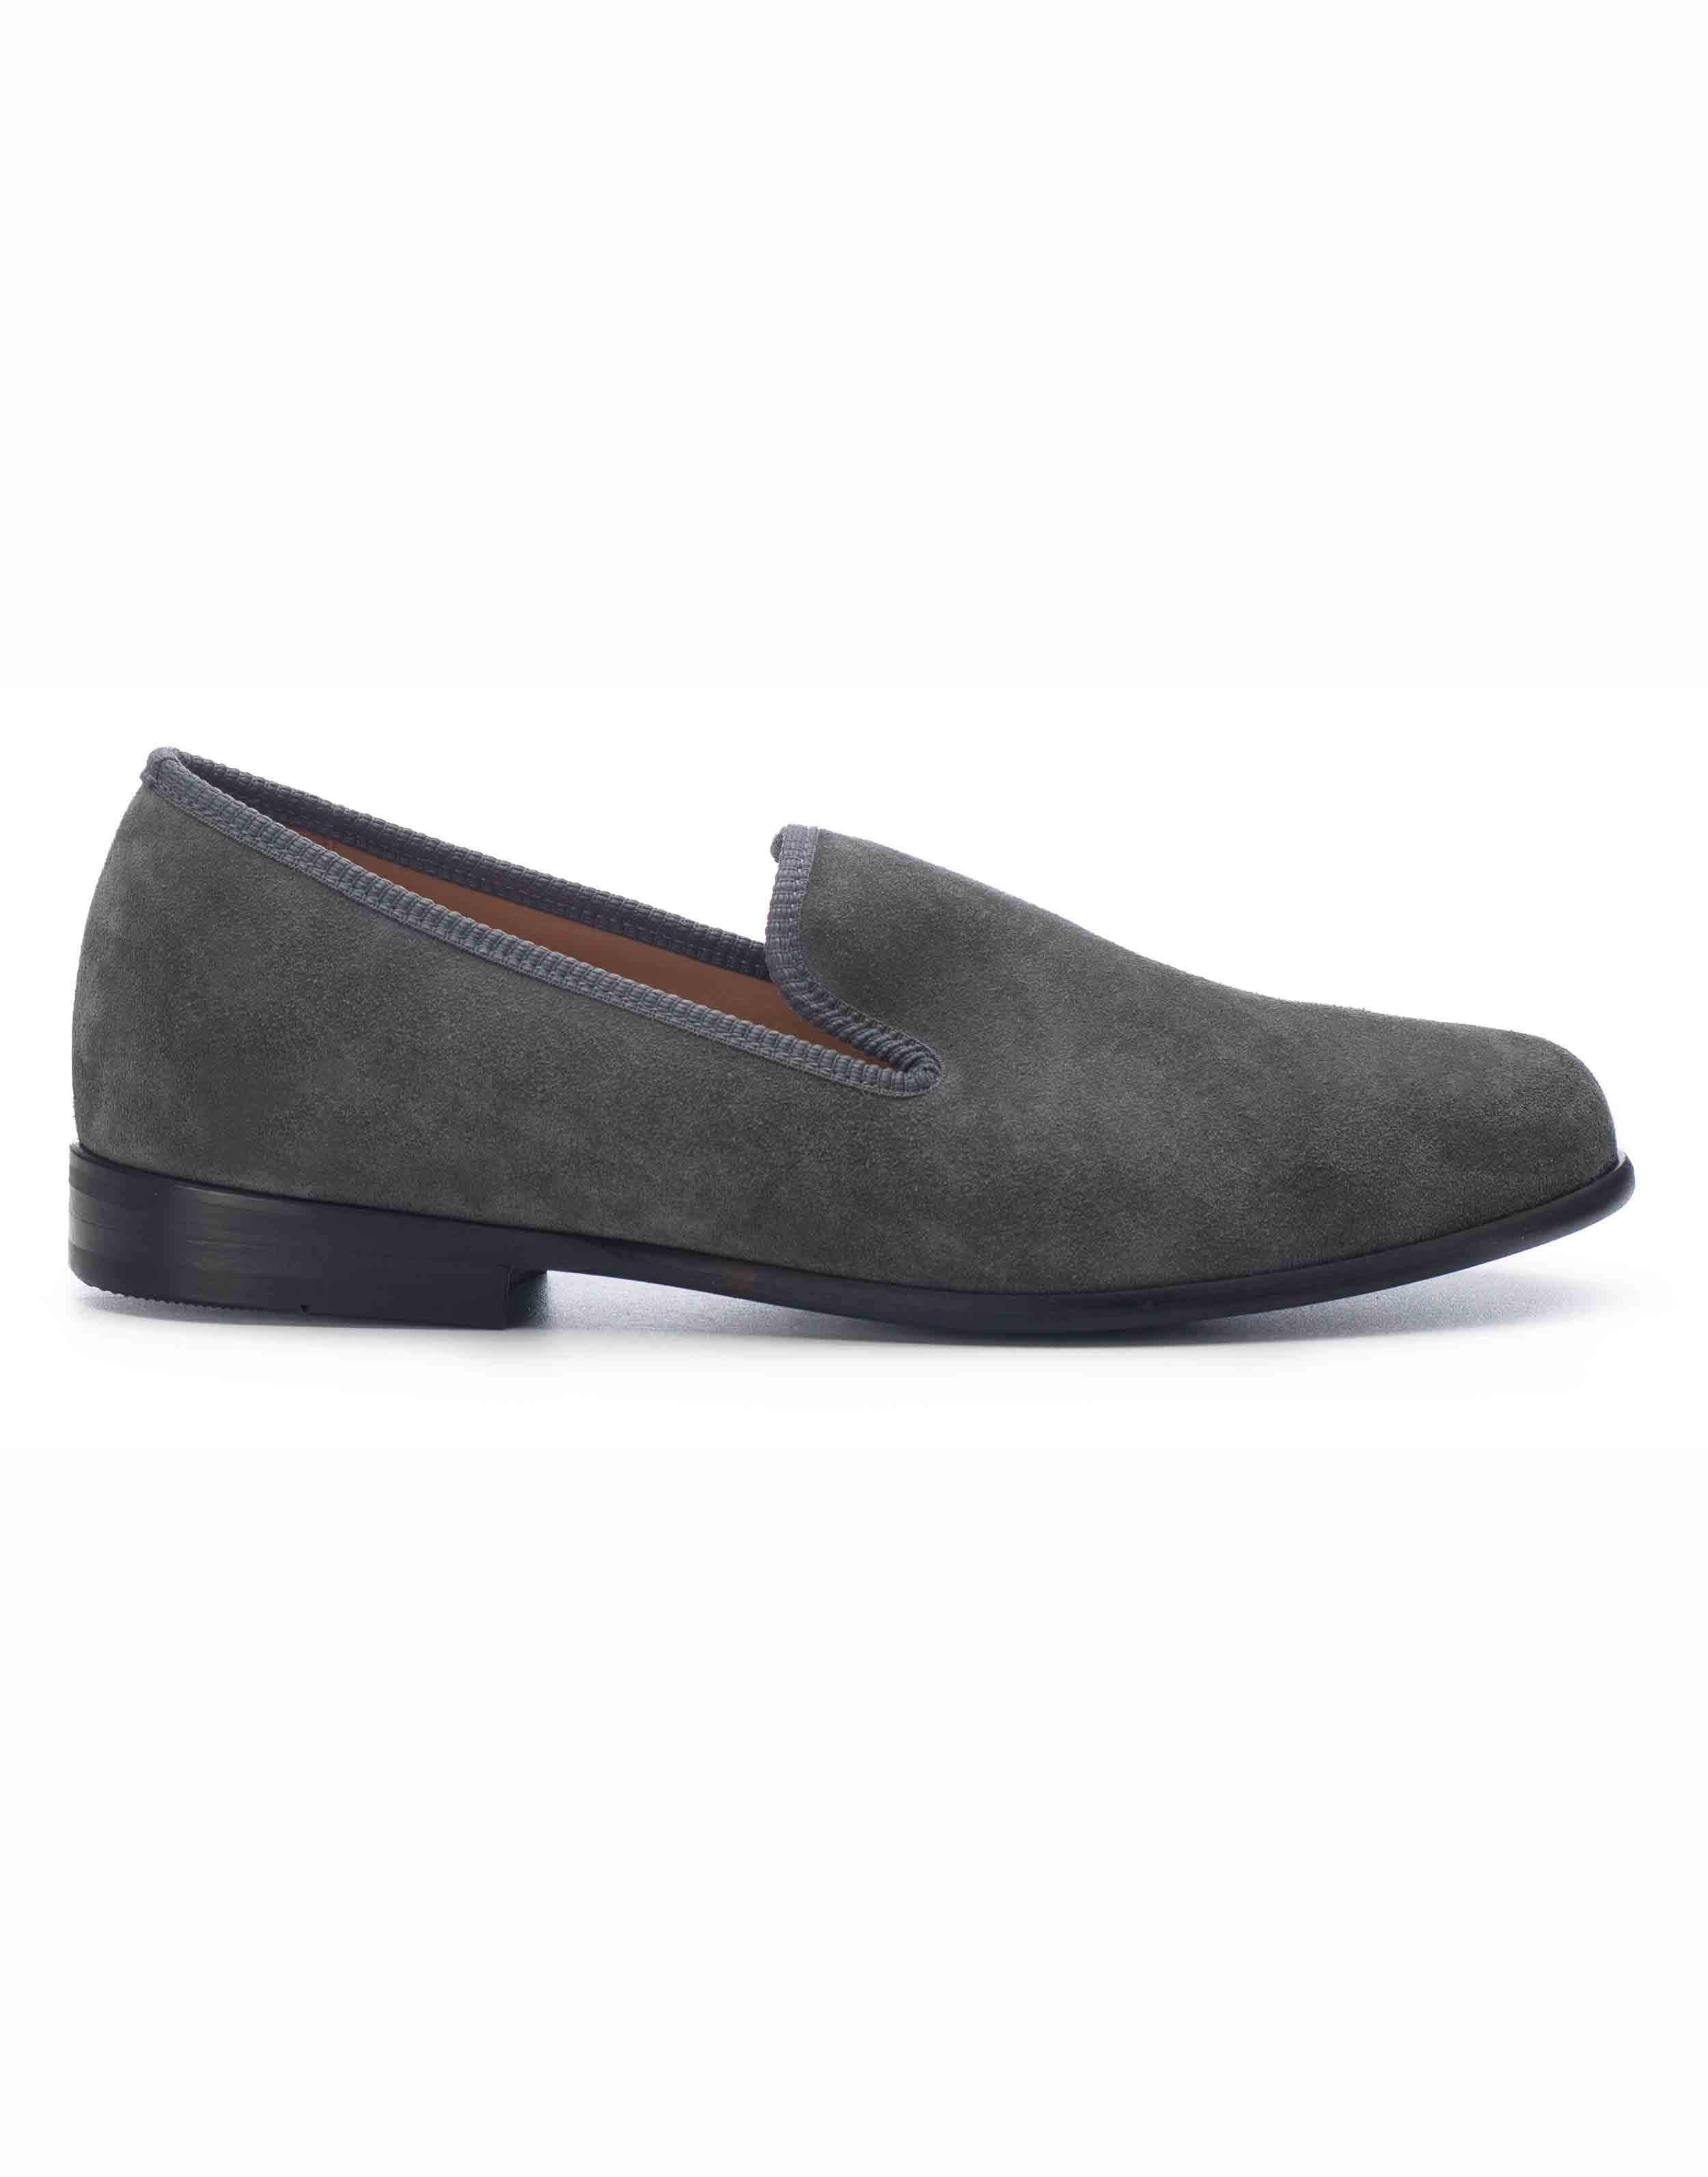 GREY SUEDE LOAFERS1